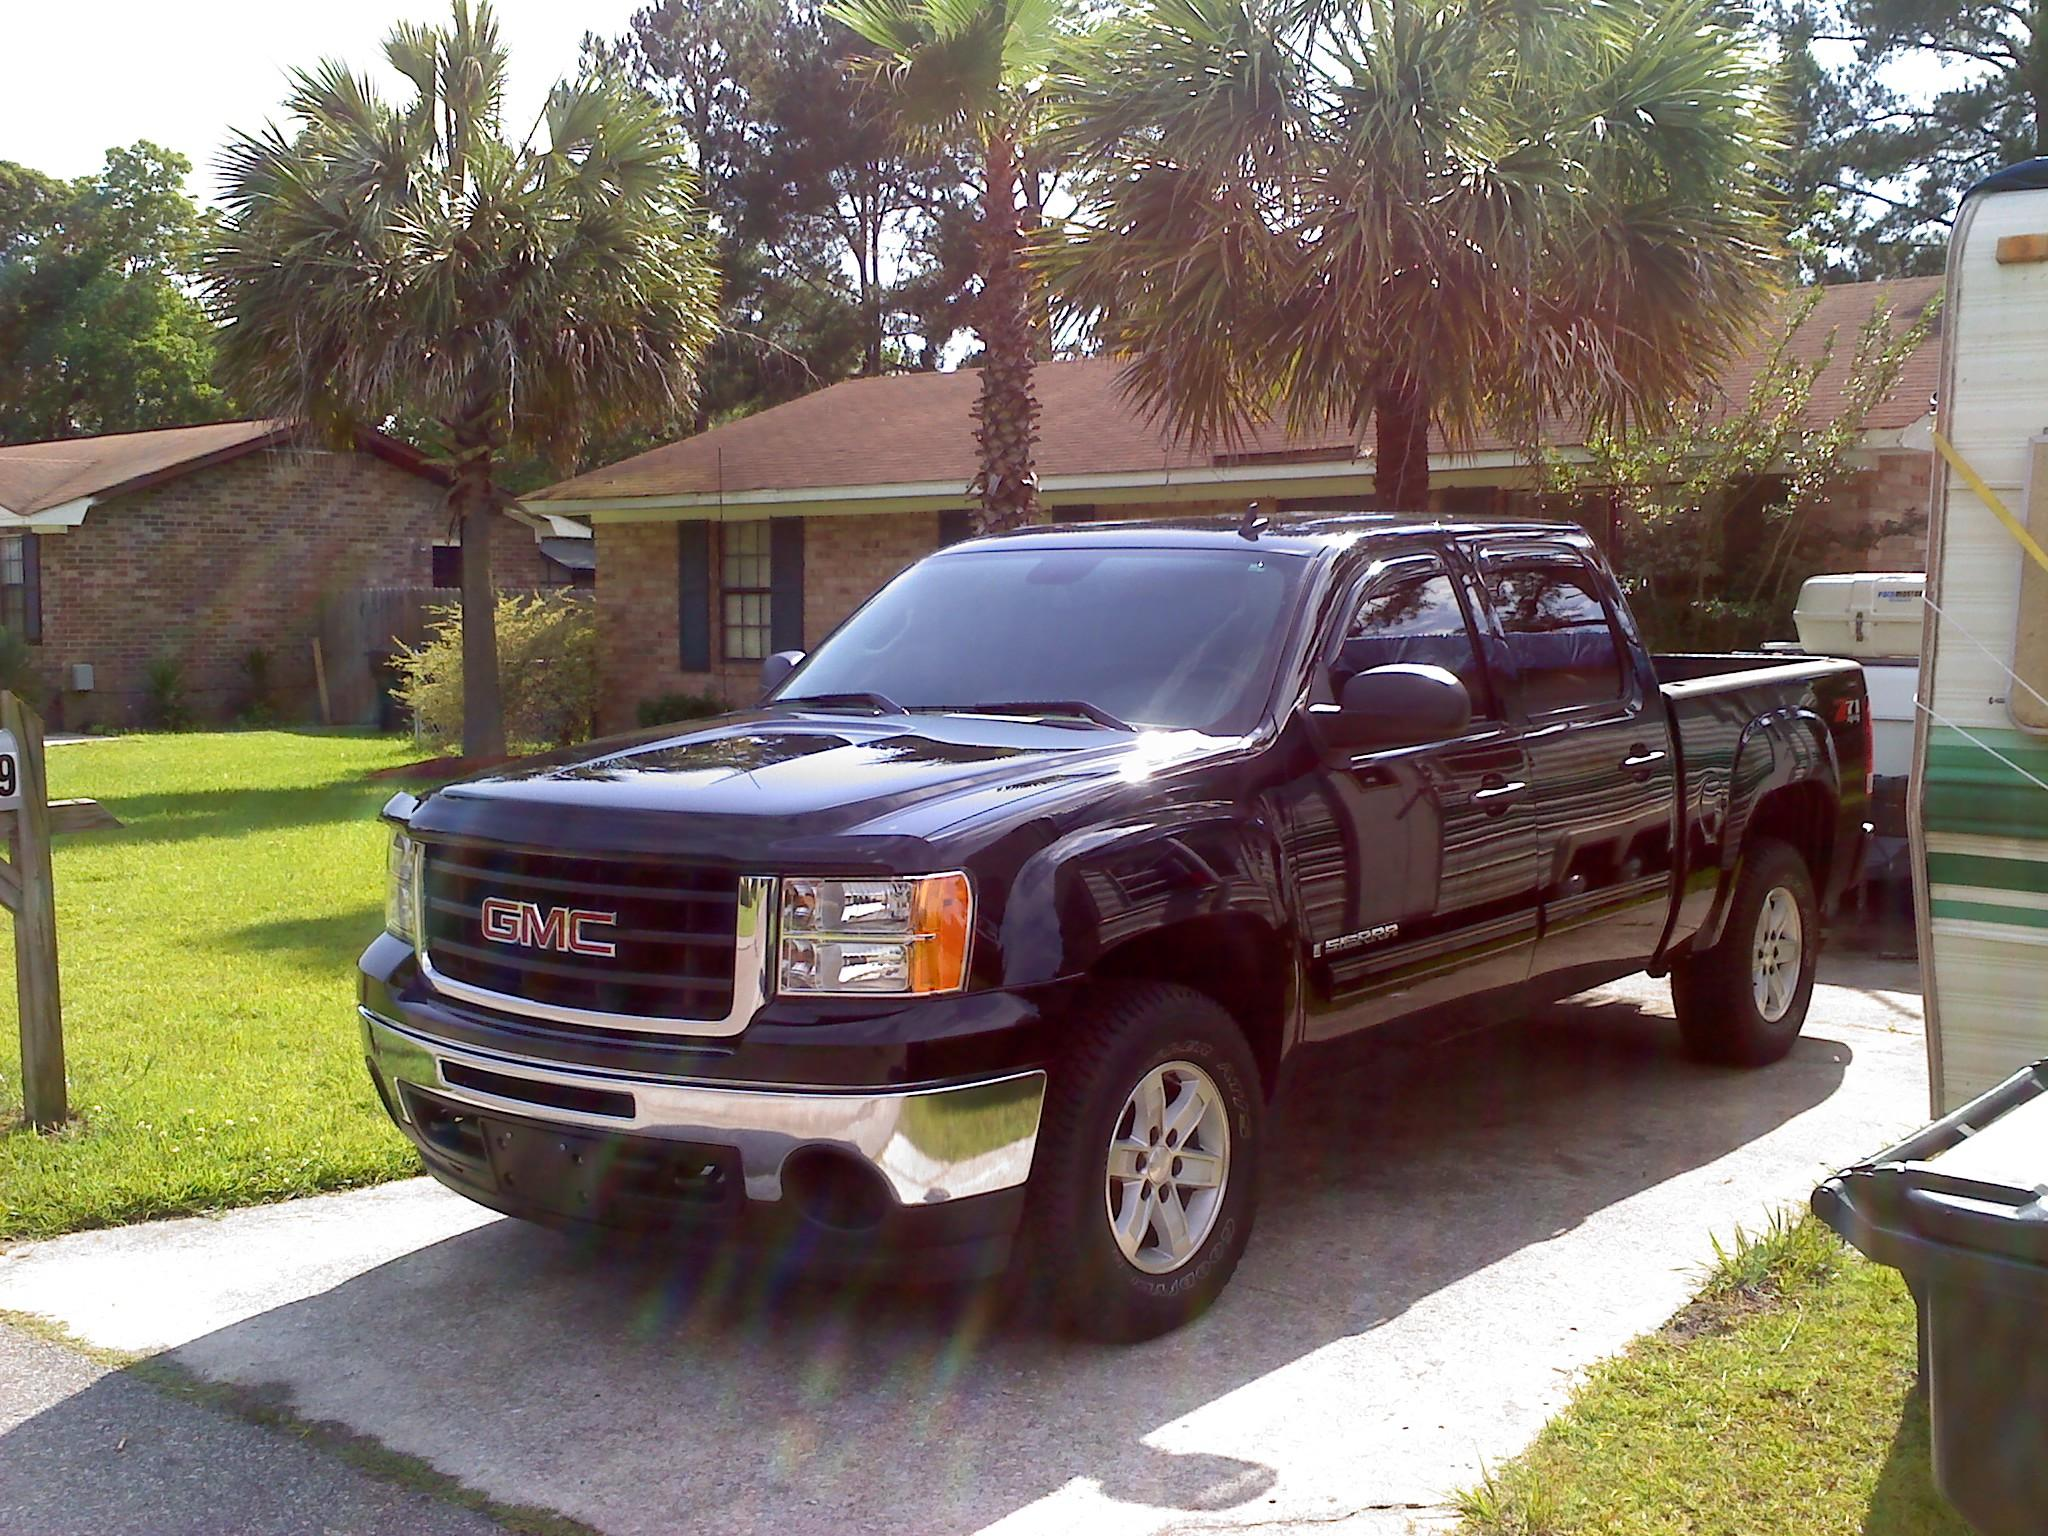 ford7374 2009 gmc sierra classic 1500 crew cab specs photos modification info at cardomain. Black Bedroom Furniture Sets. Home Design Ideas